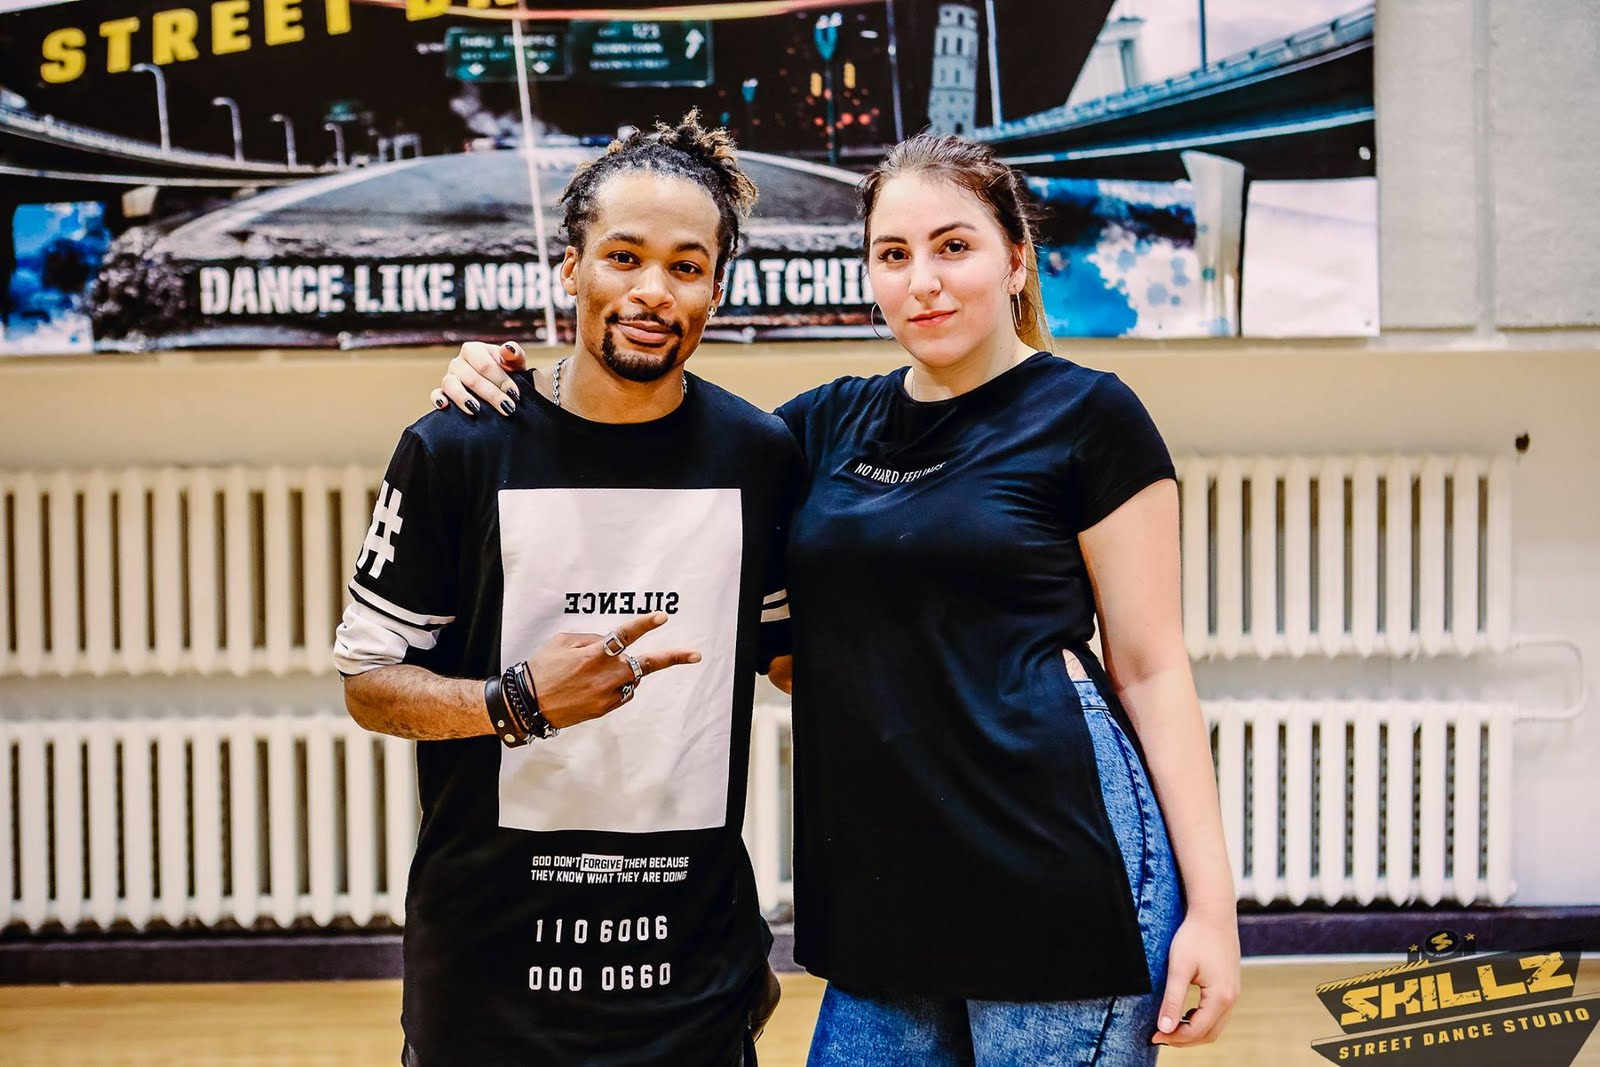 Dancehall workshop with Jiggy (France) - 72.jpg